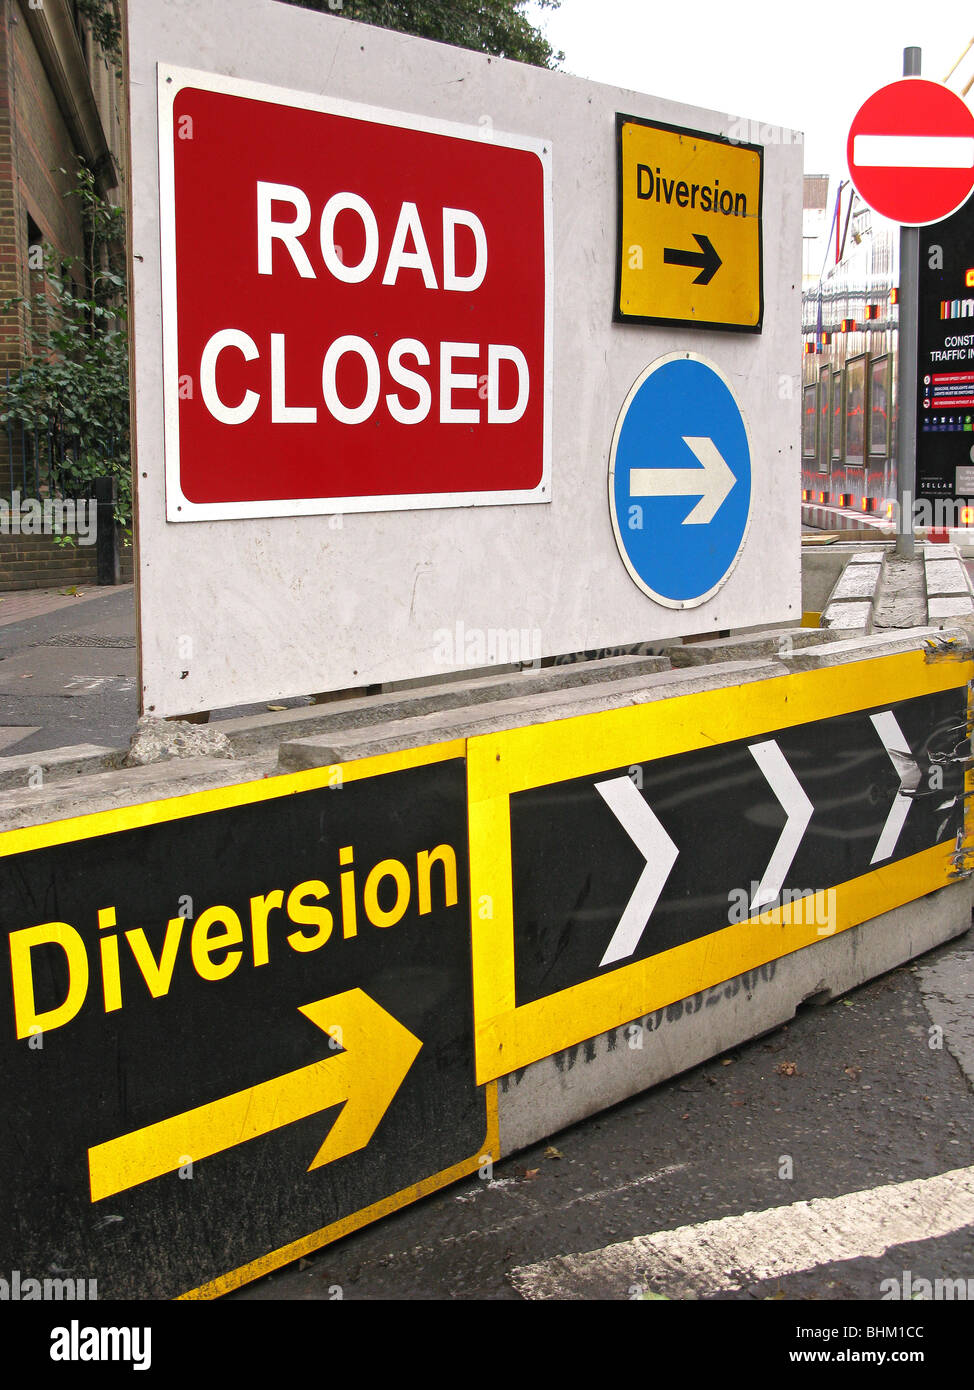 Road signs including road closed, diversion, arrows, no entry and chevrons blocking a trough road - Stock Image